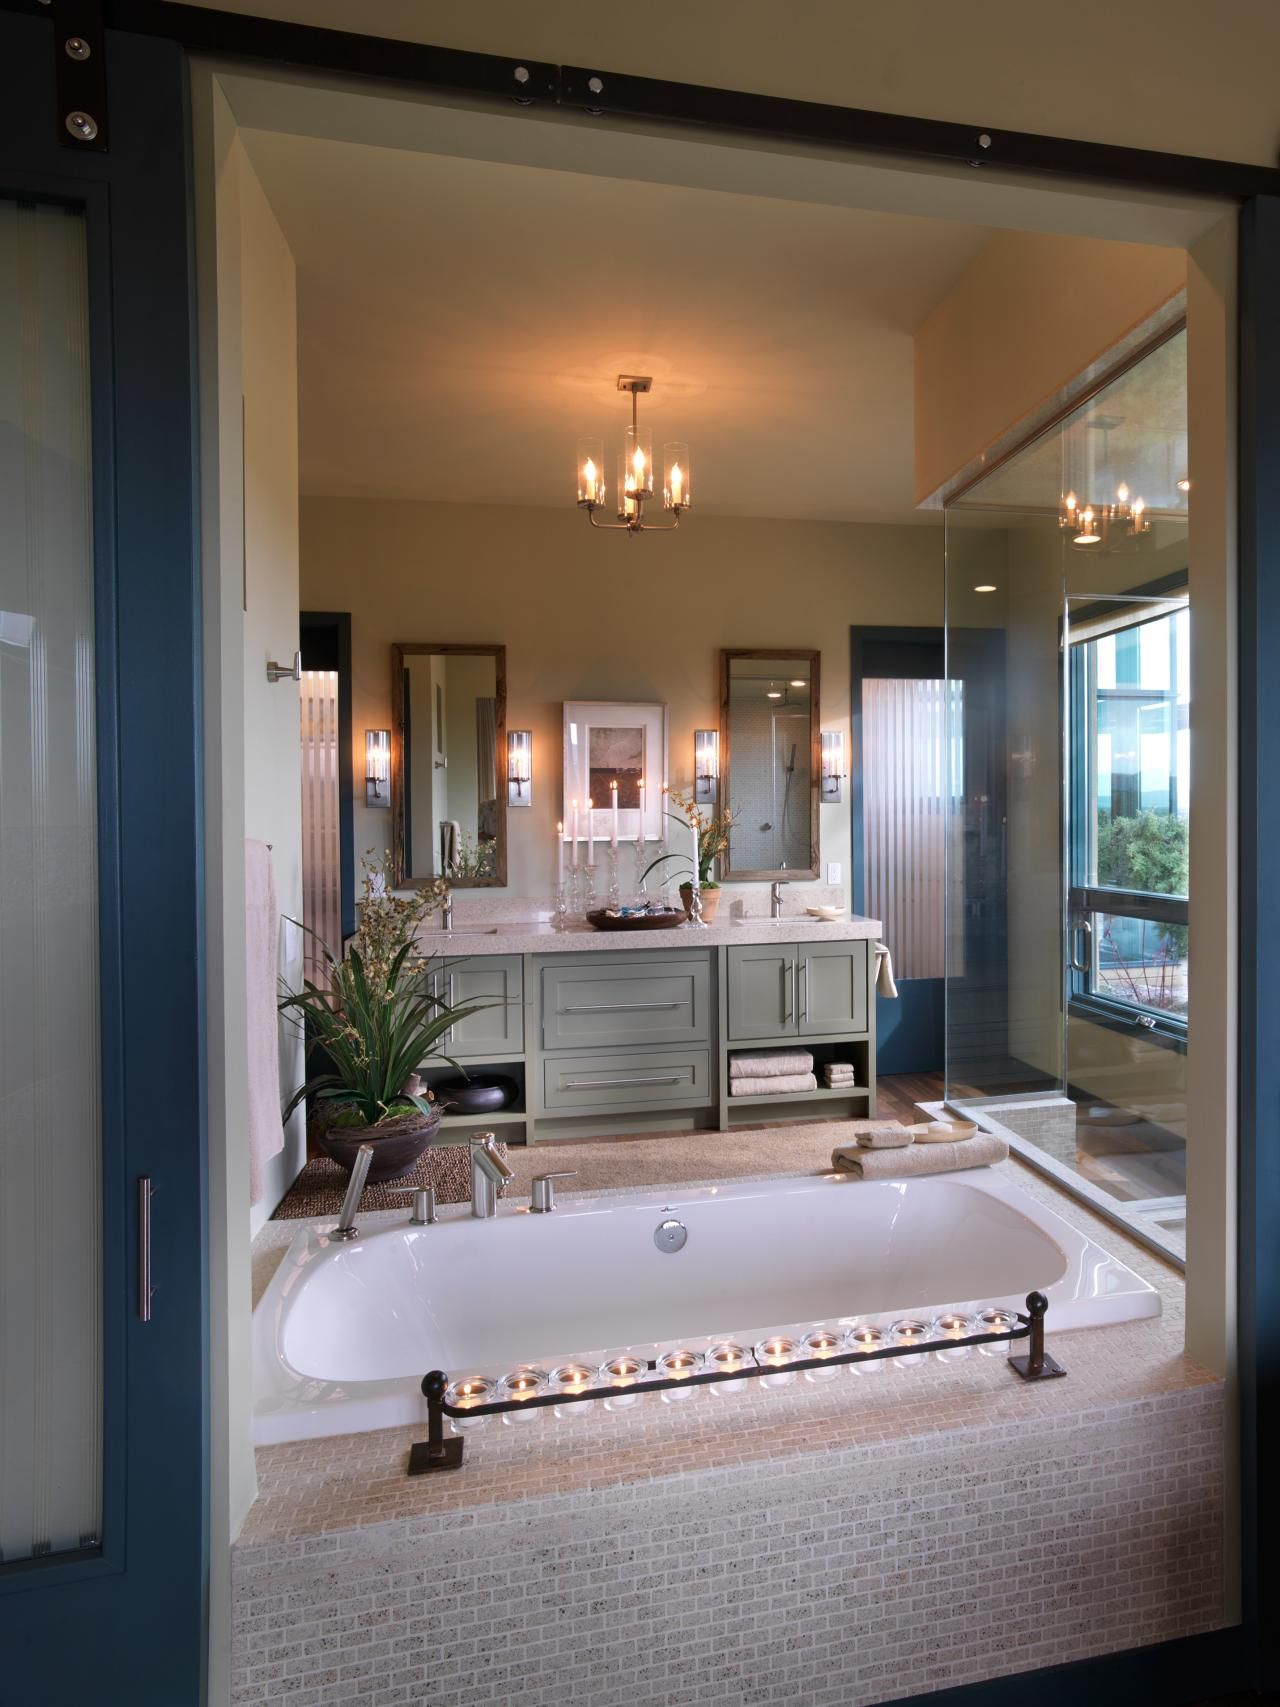 Web Photo Gallery Beautiful Bathrooms From HGTV Dream Homes